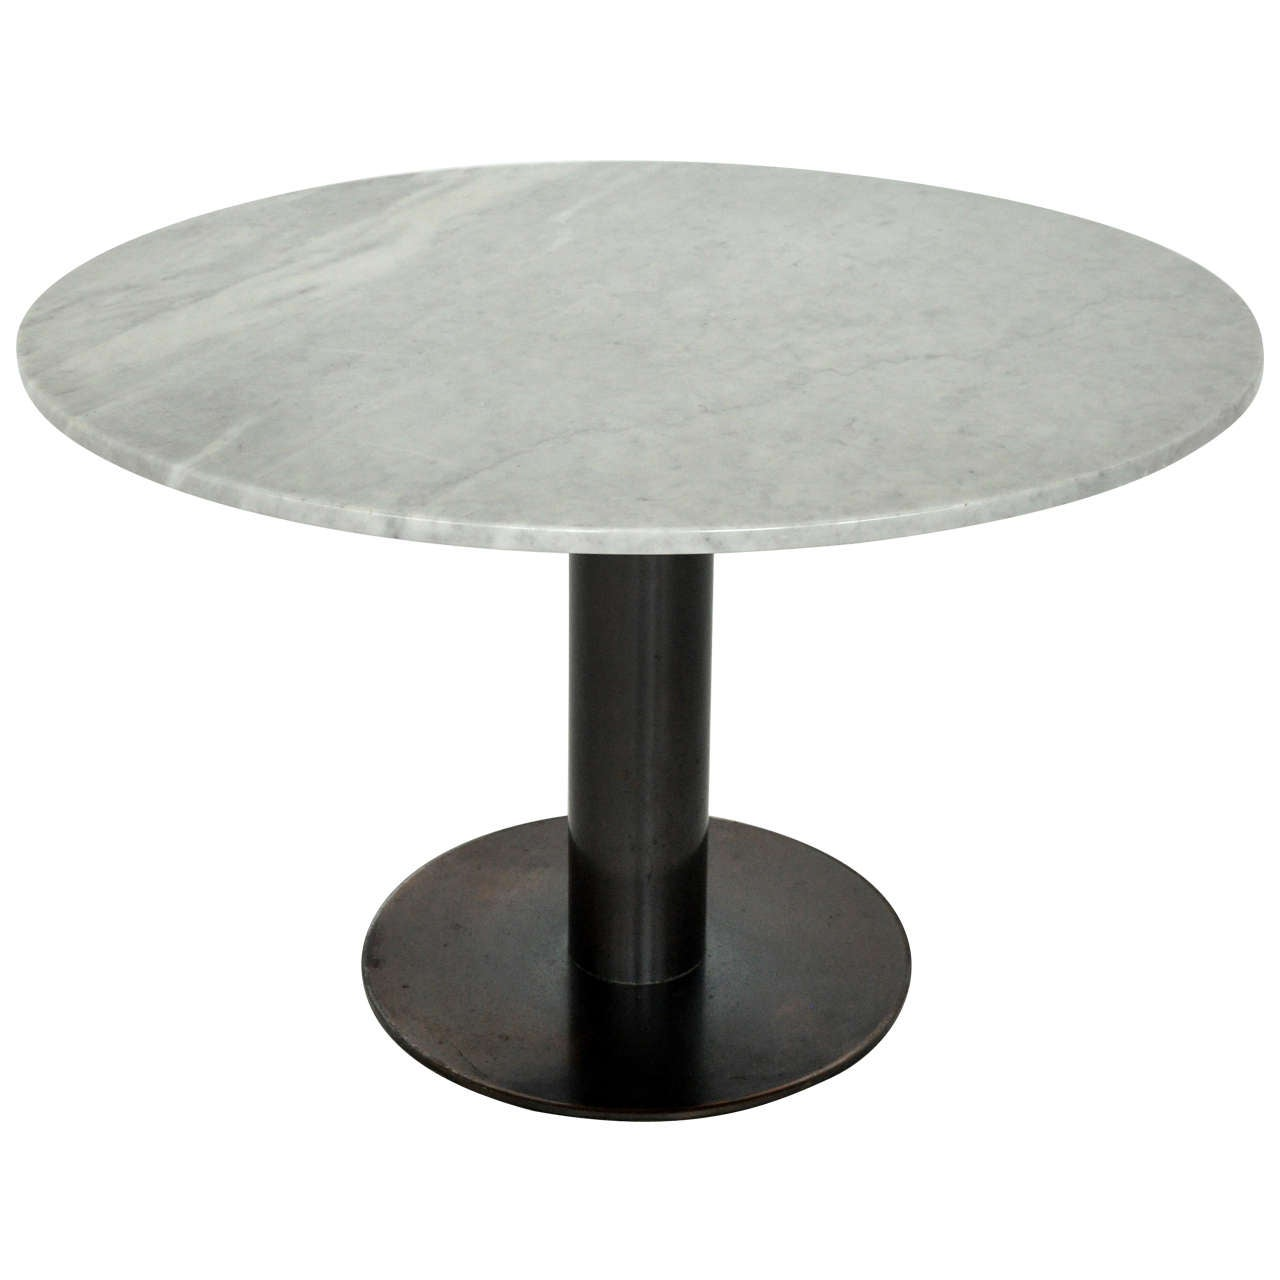 Nicos Zographos Dining Table with Bronze Base For Sale at  : X from www.1stdibs.com size 1280 x 1280 jpeg 46kB